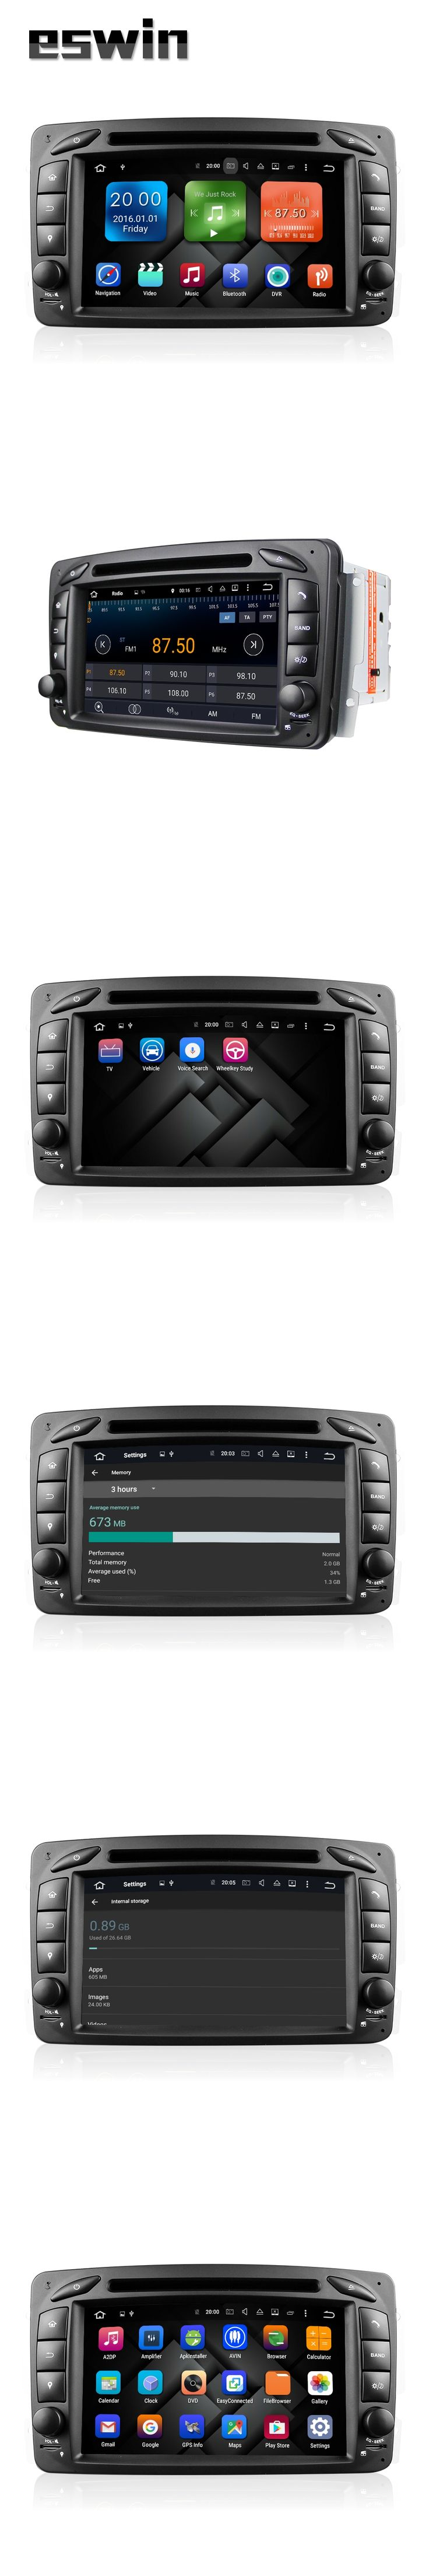 8 Core Android 6.0.1 Car DVD Player For Mercedes/Benz/W209/W203/W168/M/ML/W163/W463/Viano/W639/Vito/Vaneo Wifi GPS FM Radio USB